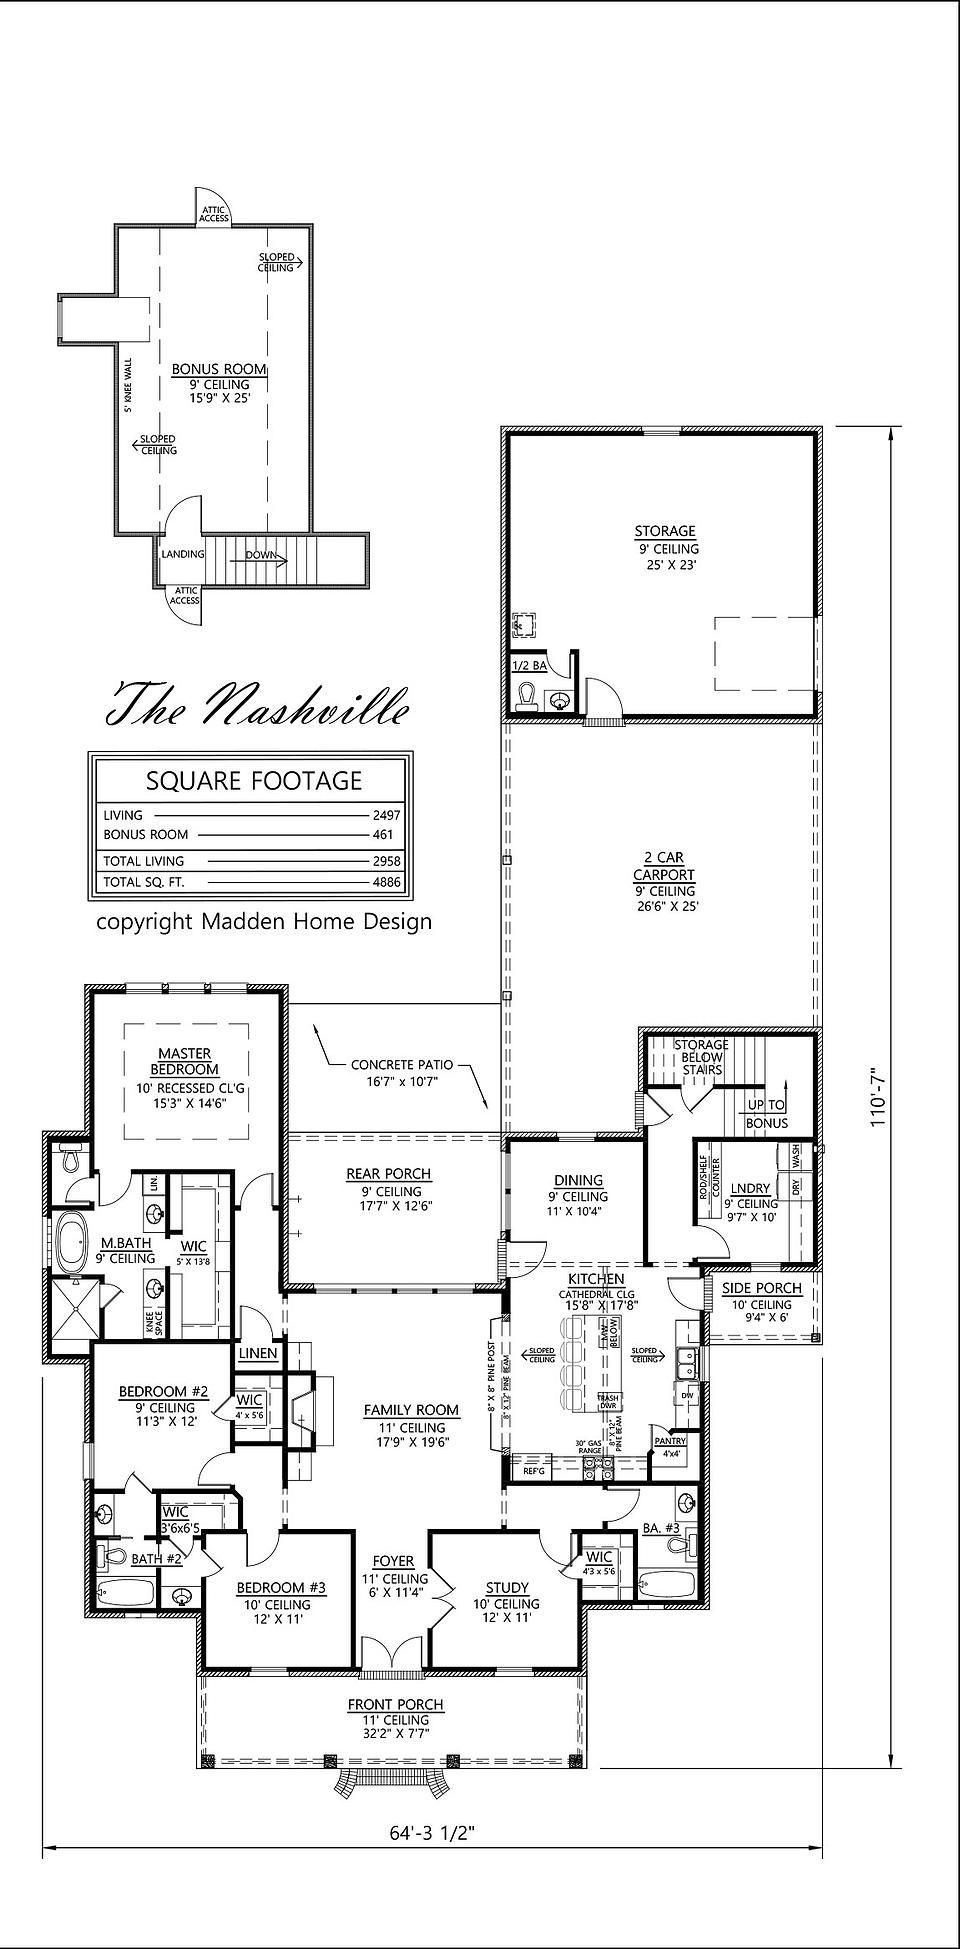 Total Square Feet The Natchitoches, Acadian Style Home Design By Steve  Madden